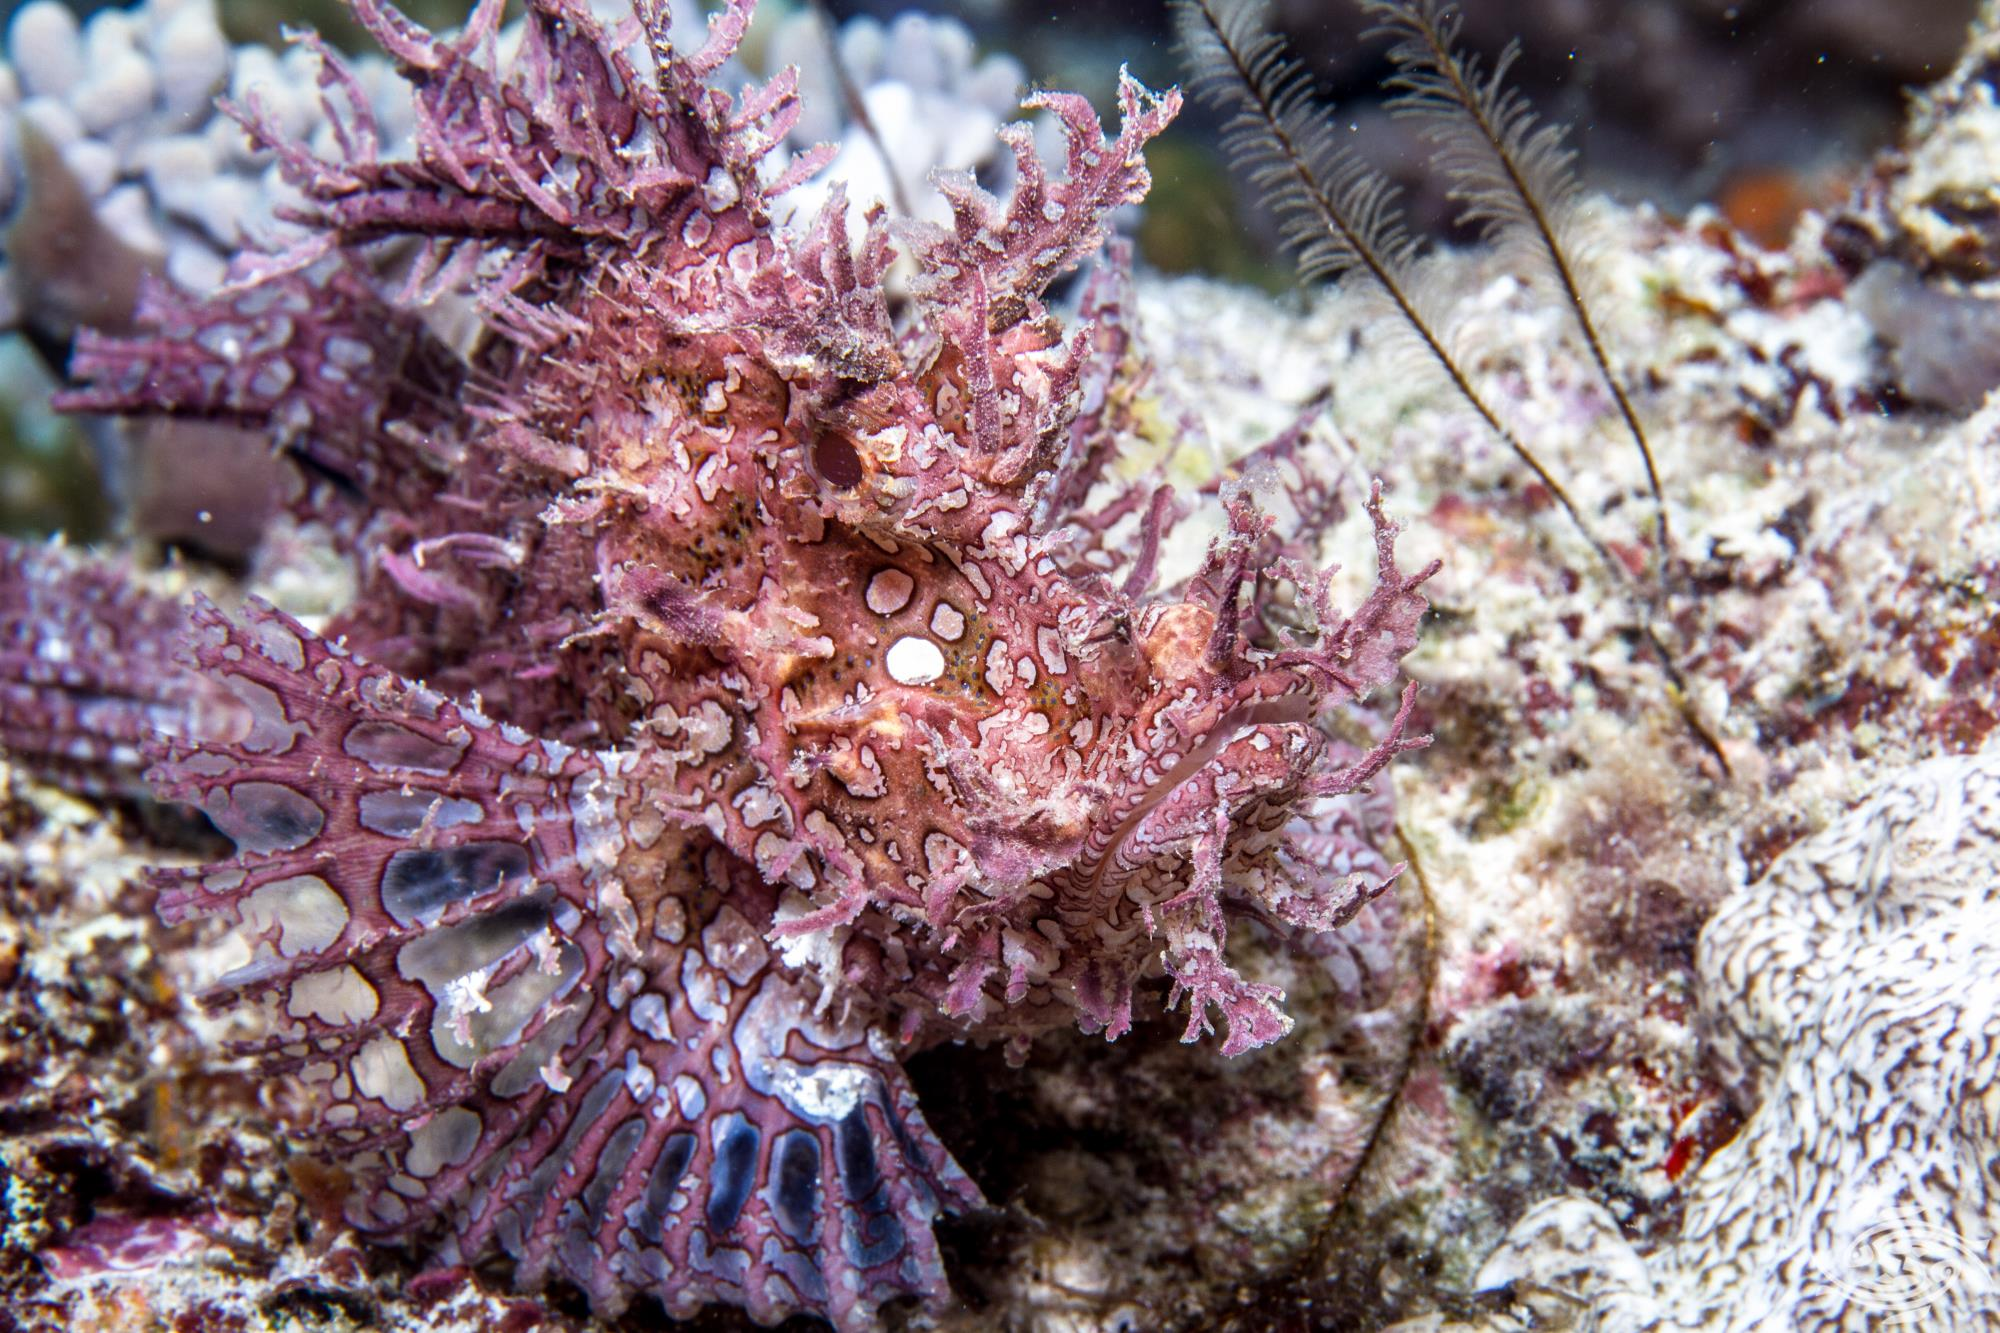 Weedy scorpionfish Rhinopias frondosa is also known as the Lacy Scorpionfish